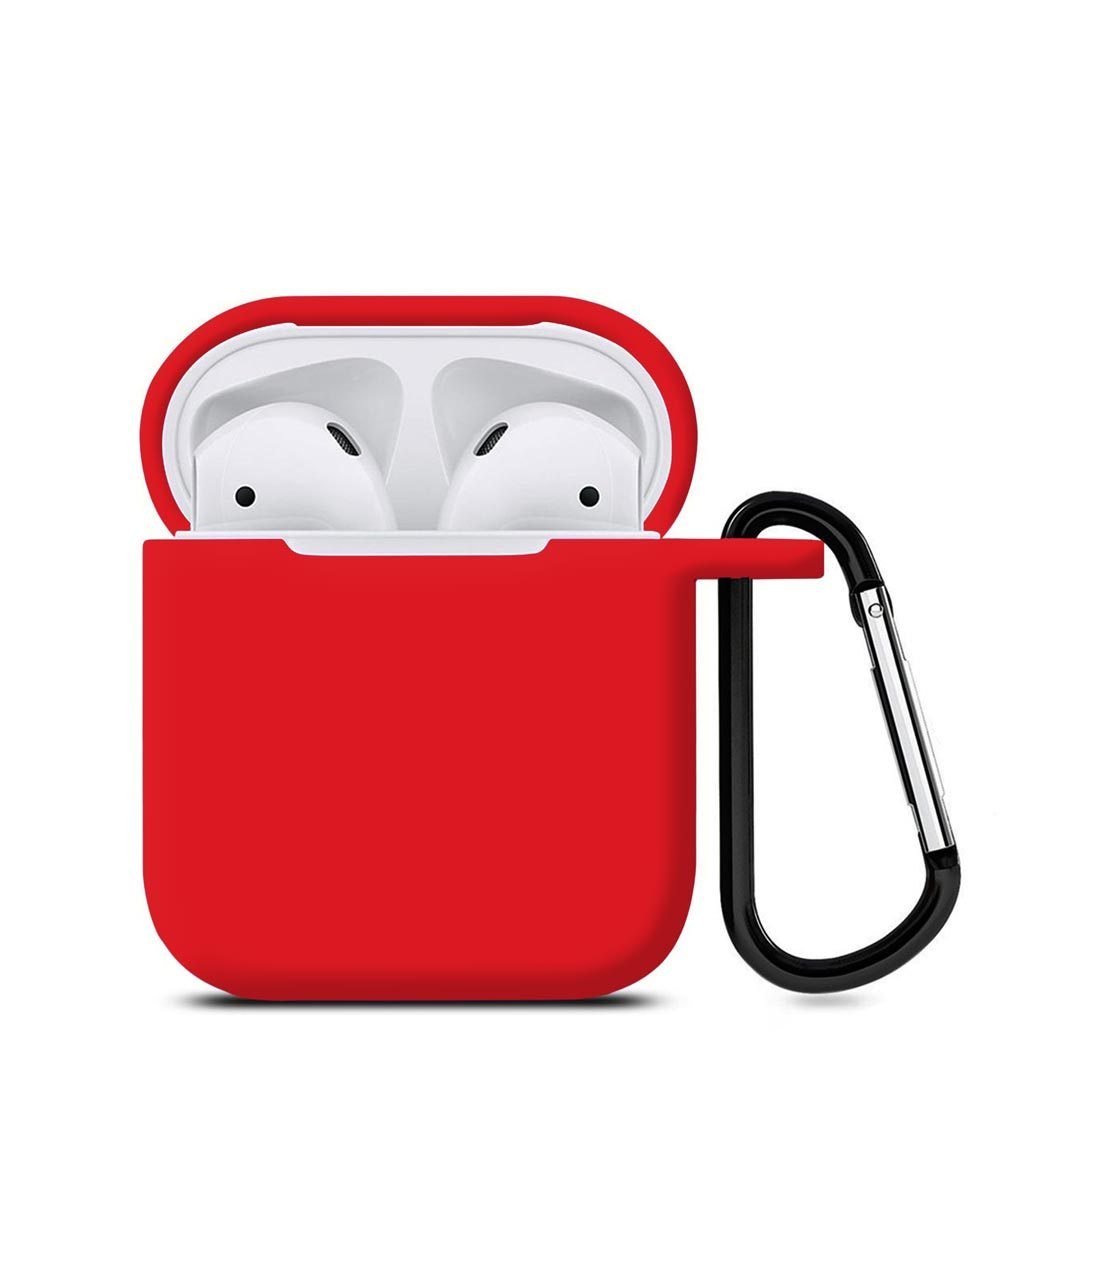 Silicone Case Red - AirPods Case